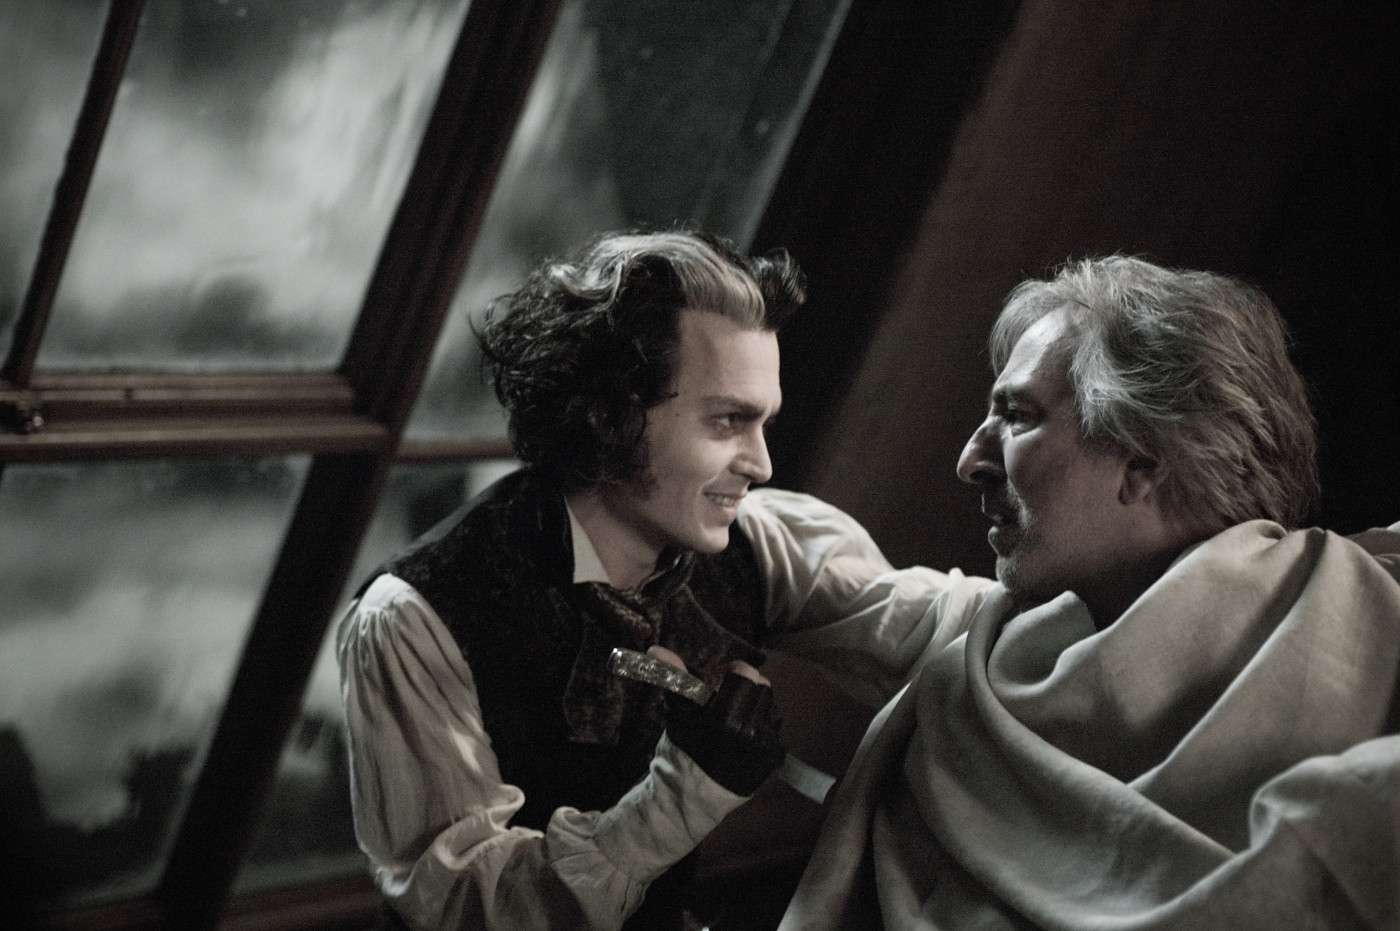 http://image.xyface.com/image/s/movie-sweeney-todd/sweeney-todd-149674.jpg